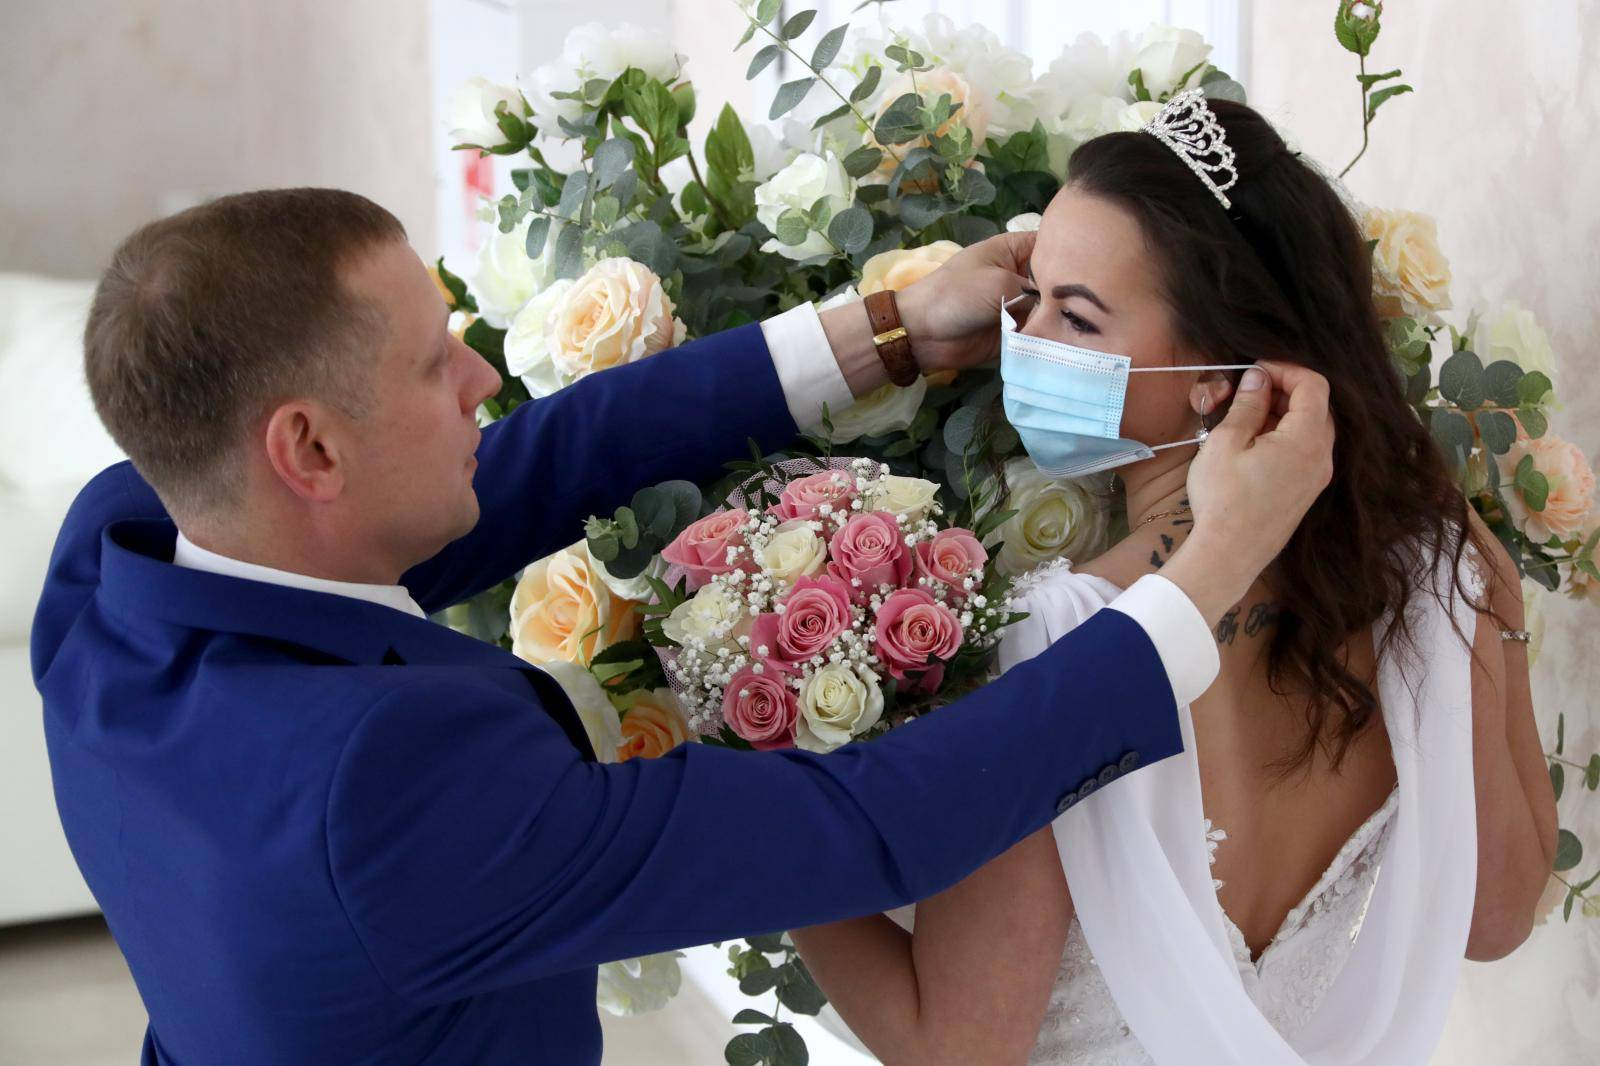 Marriage registration amid COVID-19 pandemic